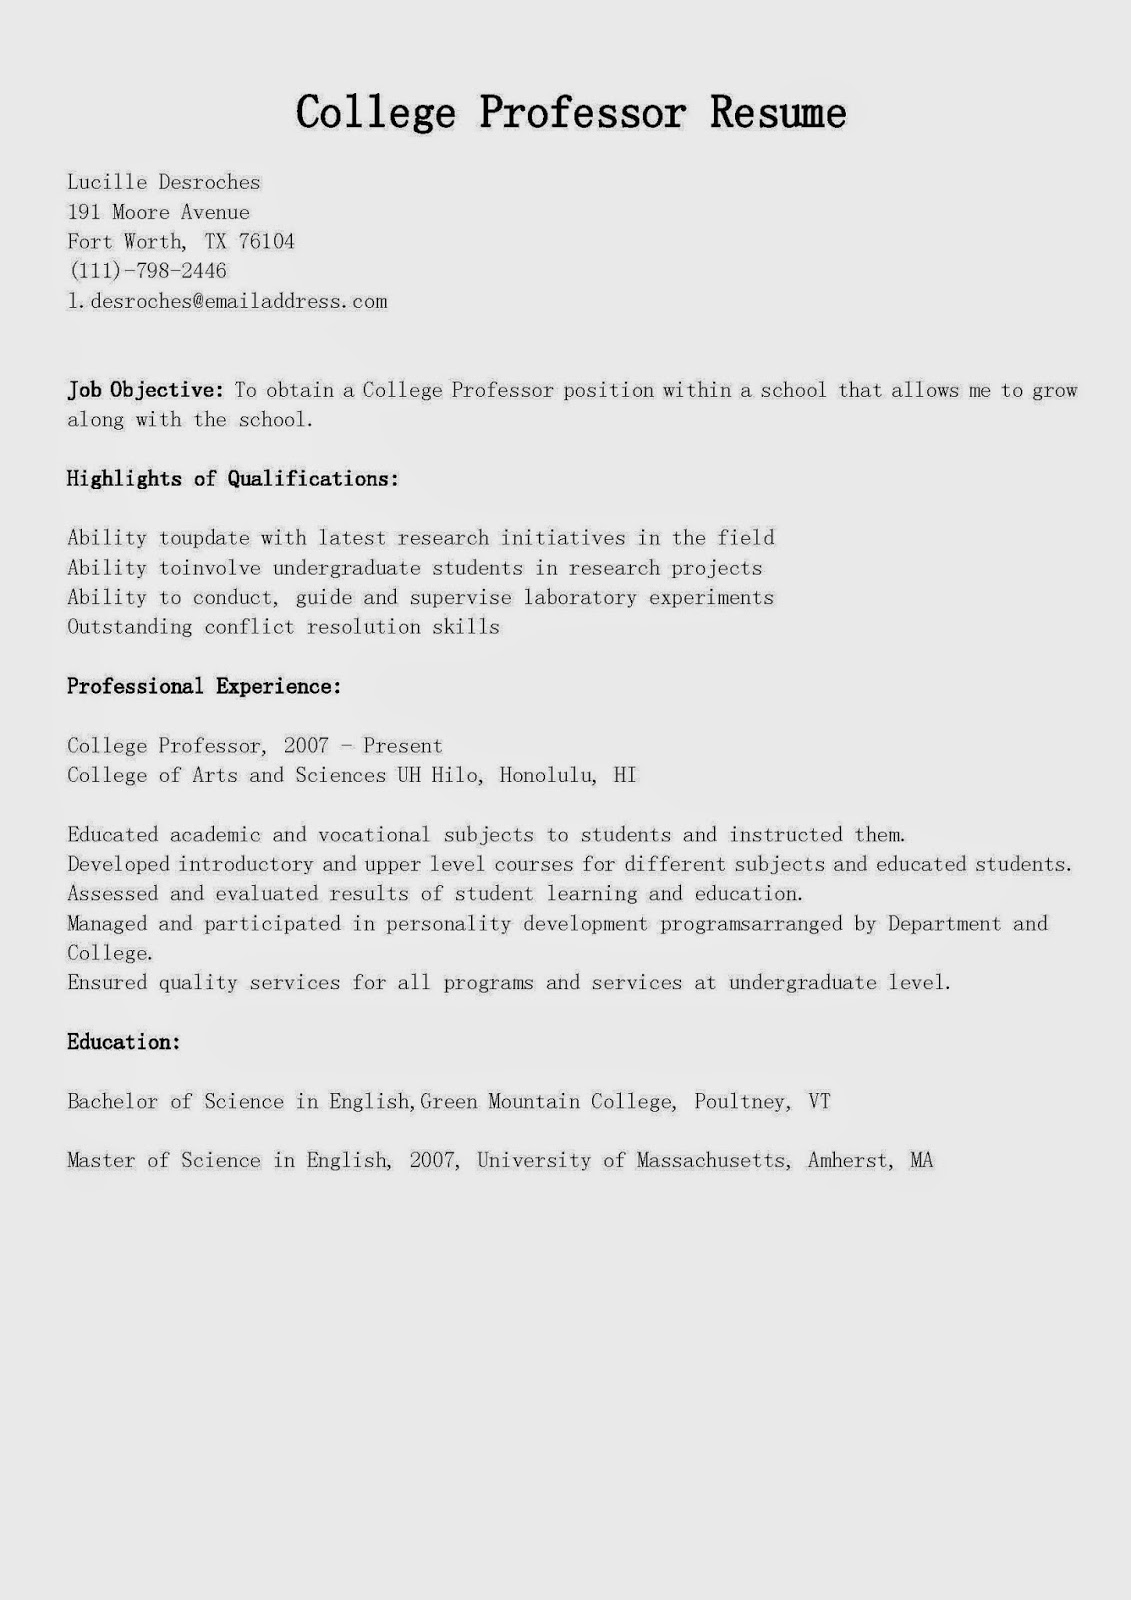 Resume samples college professor resume sample for Sample resume for experienced assistant professor in engineering college